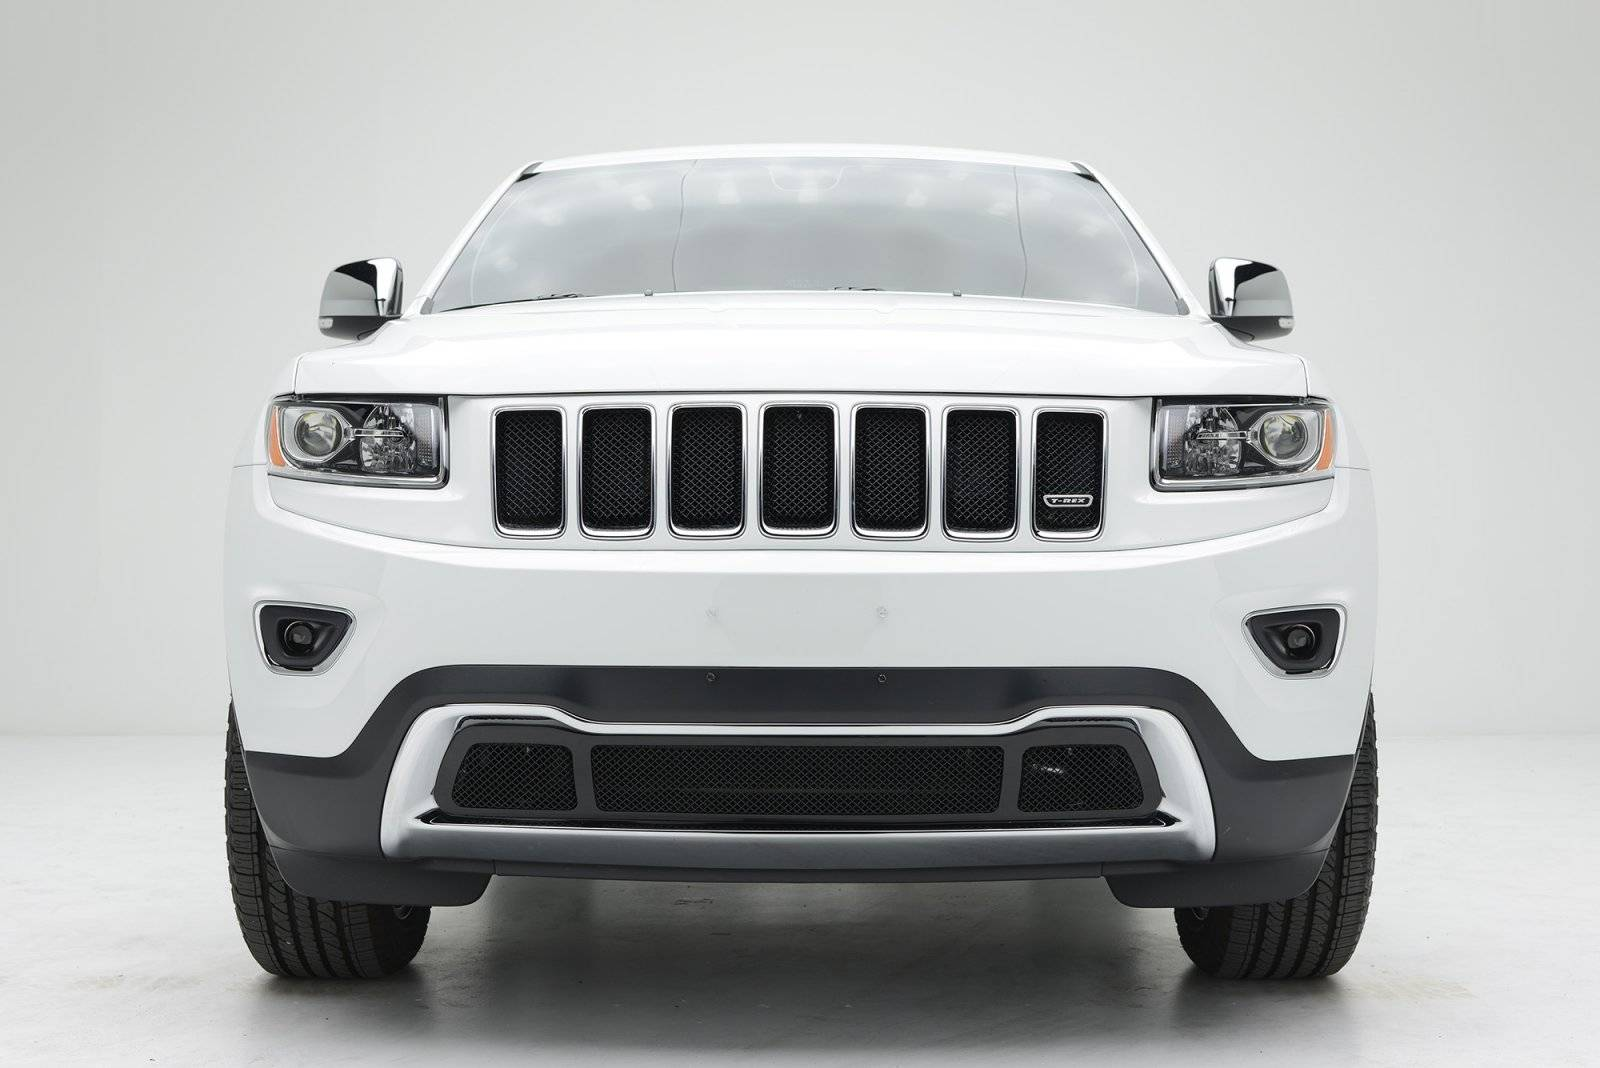 T-REX Grilles - Jeep Grand Cherokee Sport Series Formed Mesh Grille - All Black - Pt # 46488